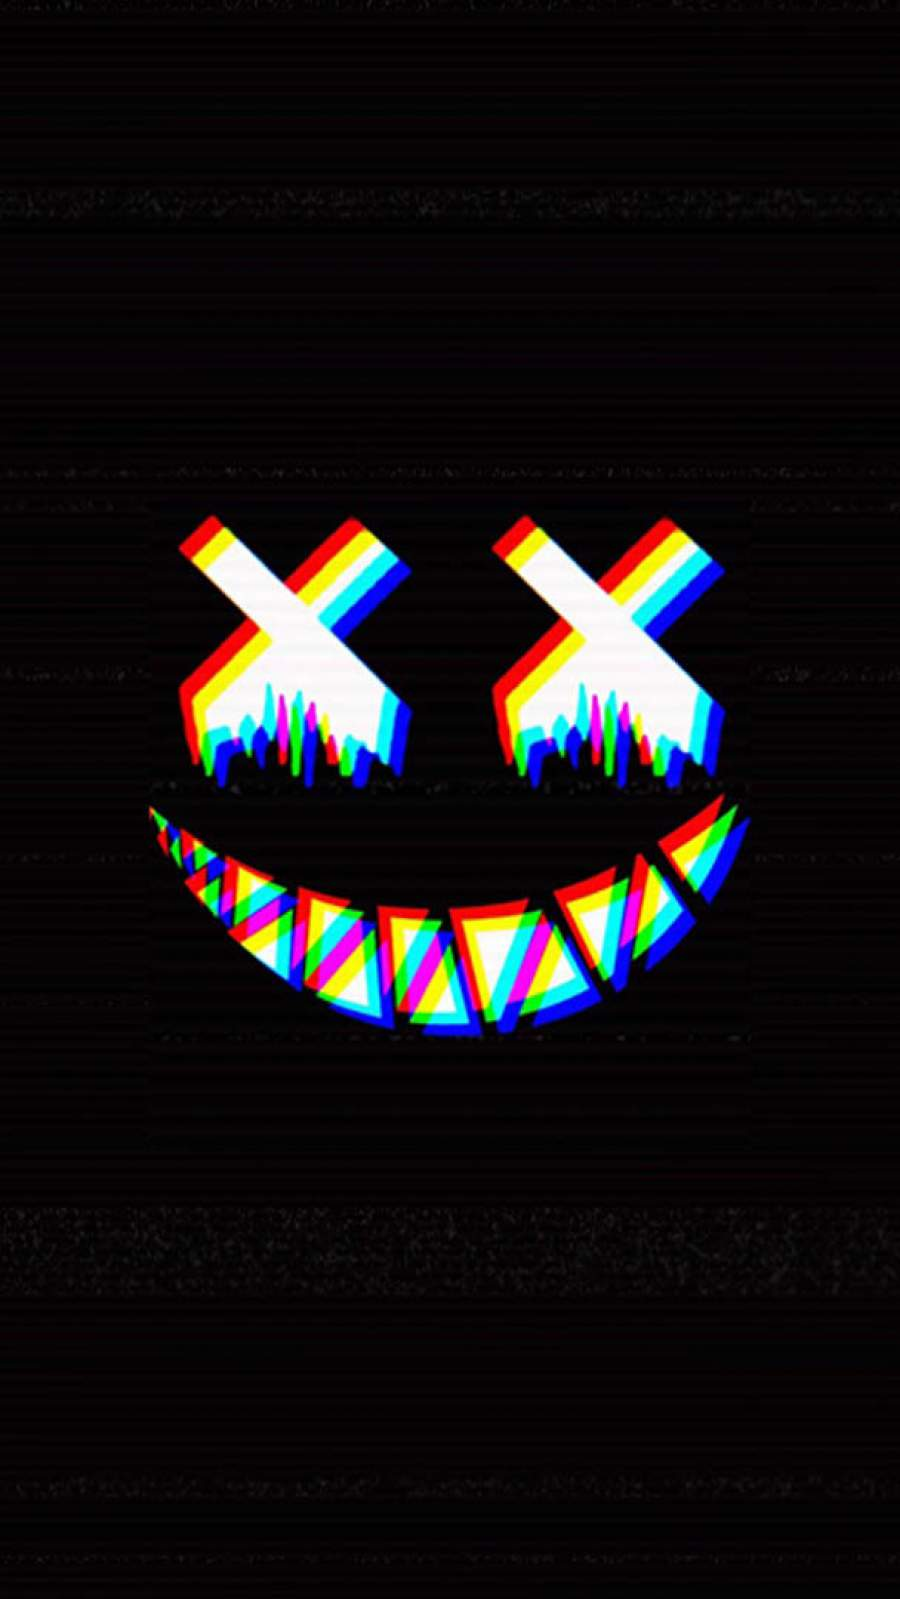 Dead Smile Glitch iPhone Wallpaper